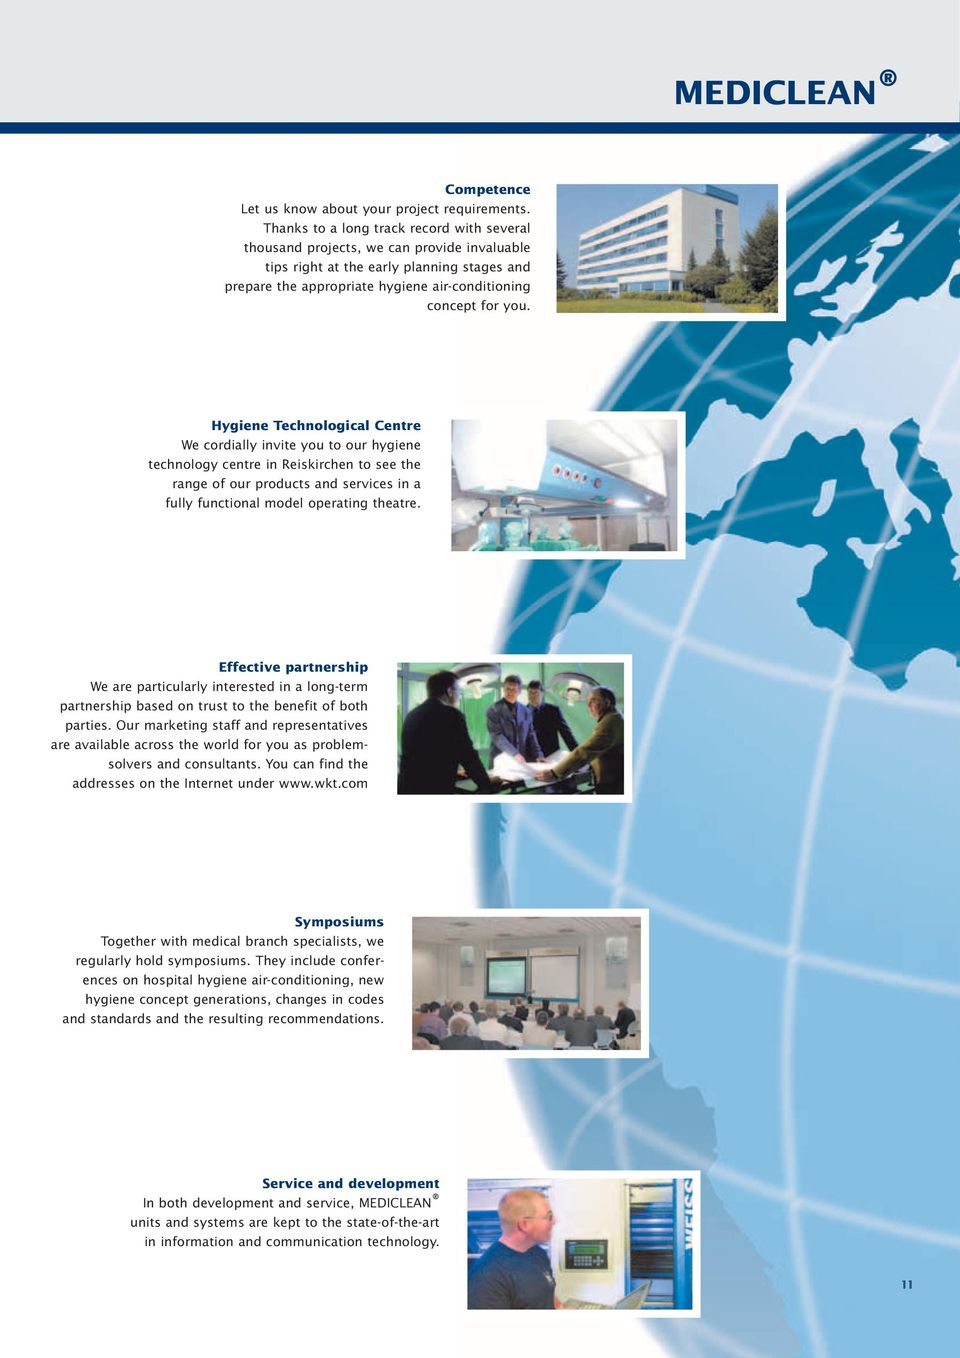 Hygiene Technological Centre We cordially invite you to our hygiene technology centre in Reiskirchen to see the range of our products and services in a fully functional model operating theatre.